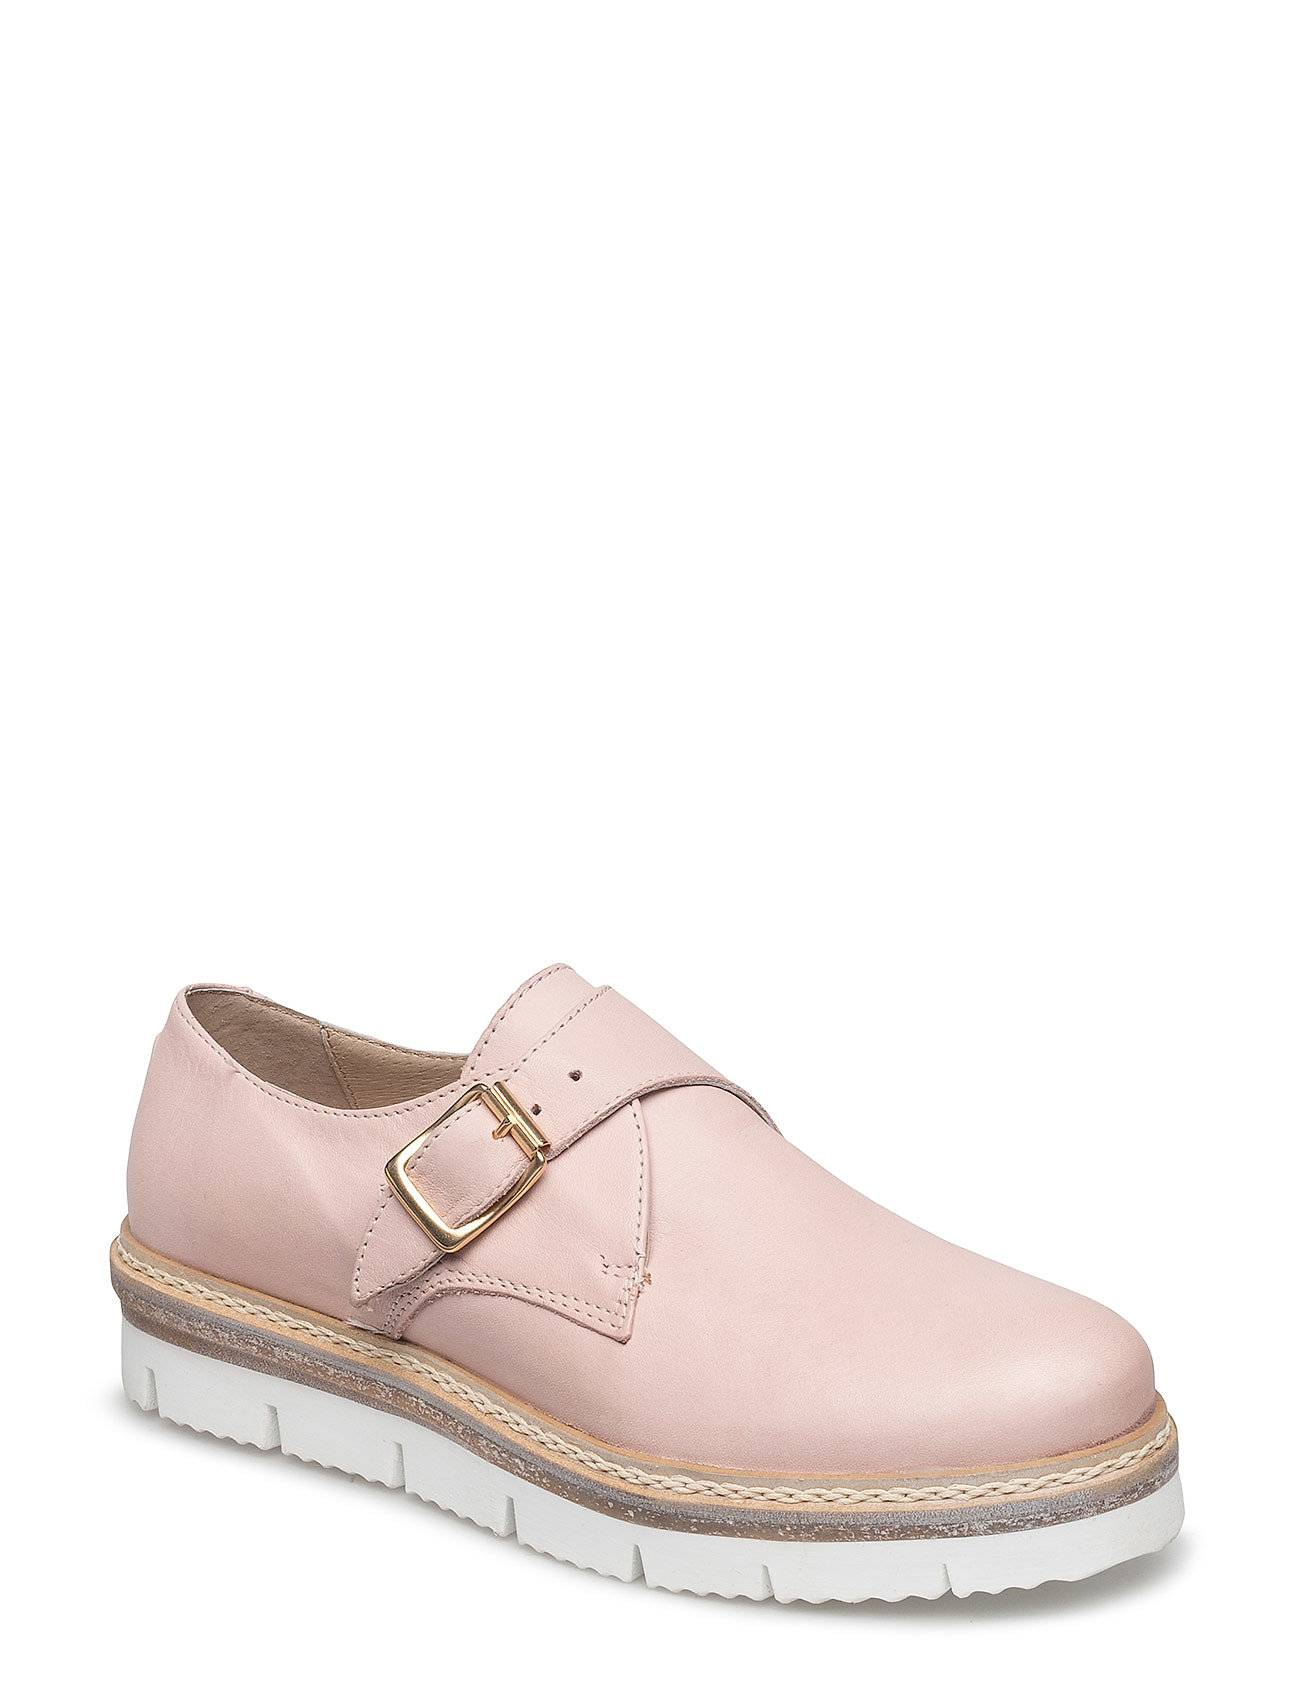 Bianco Cleated Monk Loafer Jfm18